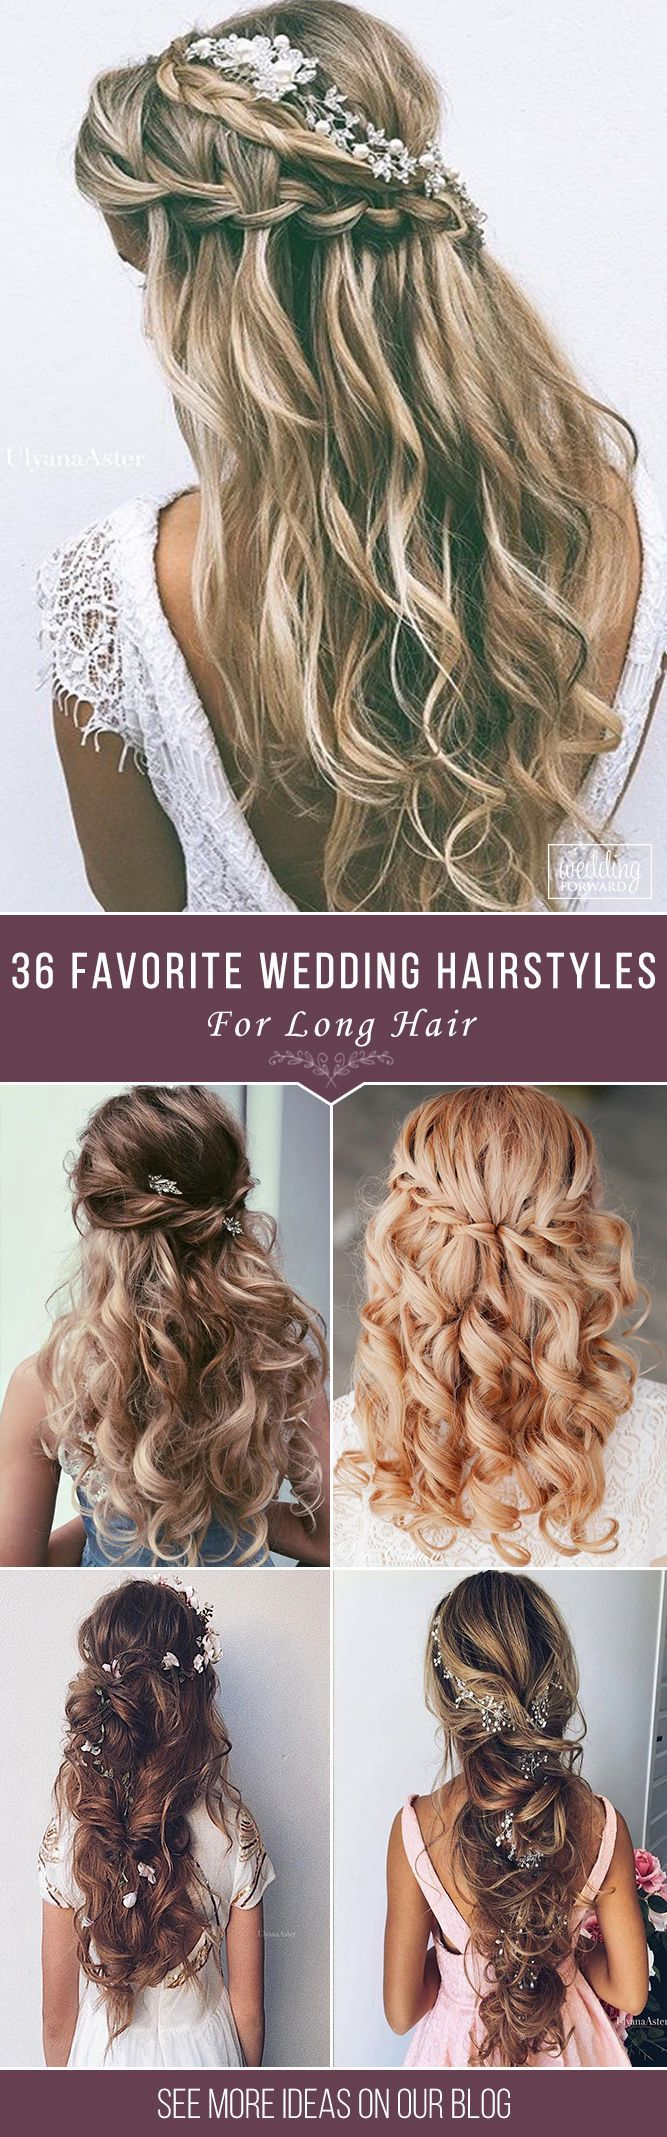 36 Our Favorite Wedding Hairstyles For Long Hair ❤️ We make a list our favorite wedding hairstyles for long hair. Look through it and pick your perfect variant to become the most beautiful bride. See more: http://www.weddingforward.com/favorite-wedding-hairstyles-long-hair/ #weddings #hairstyles #updos